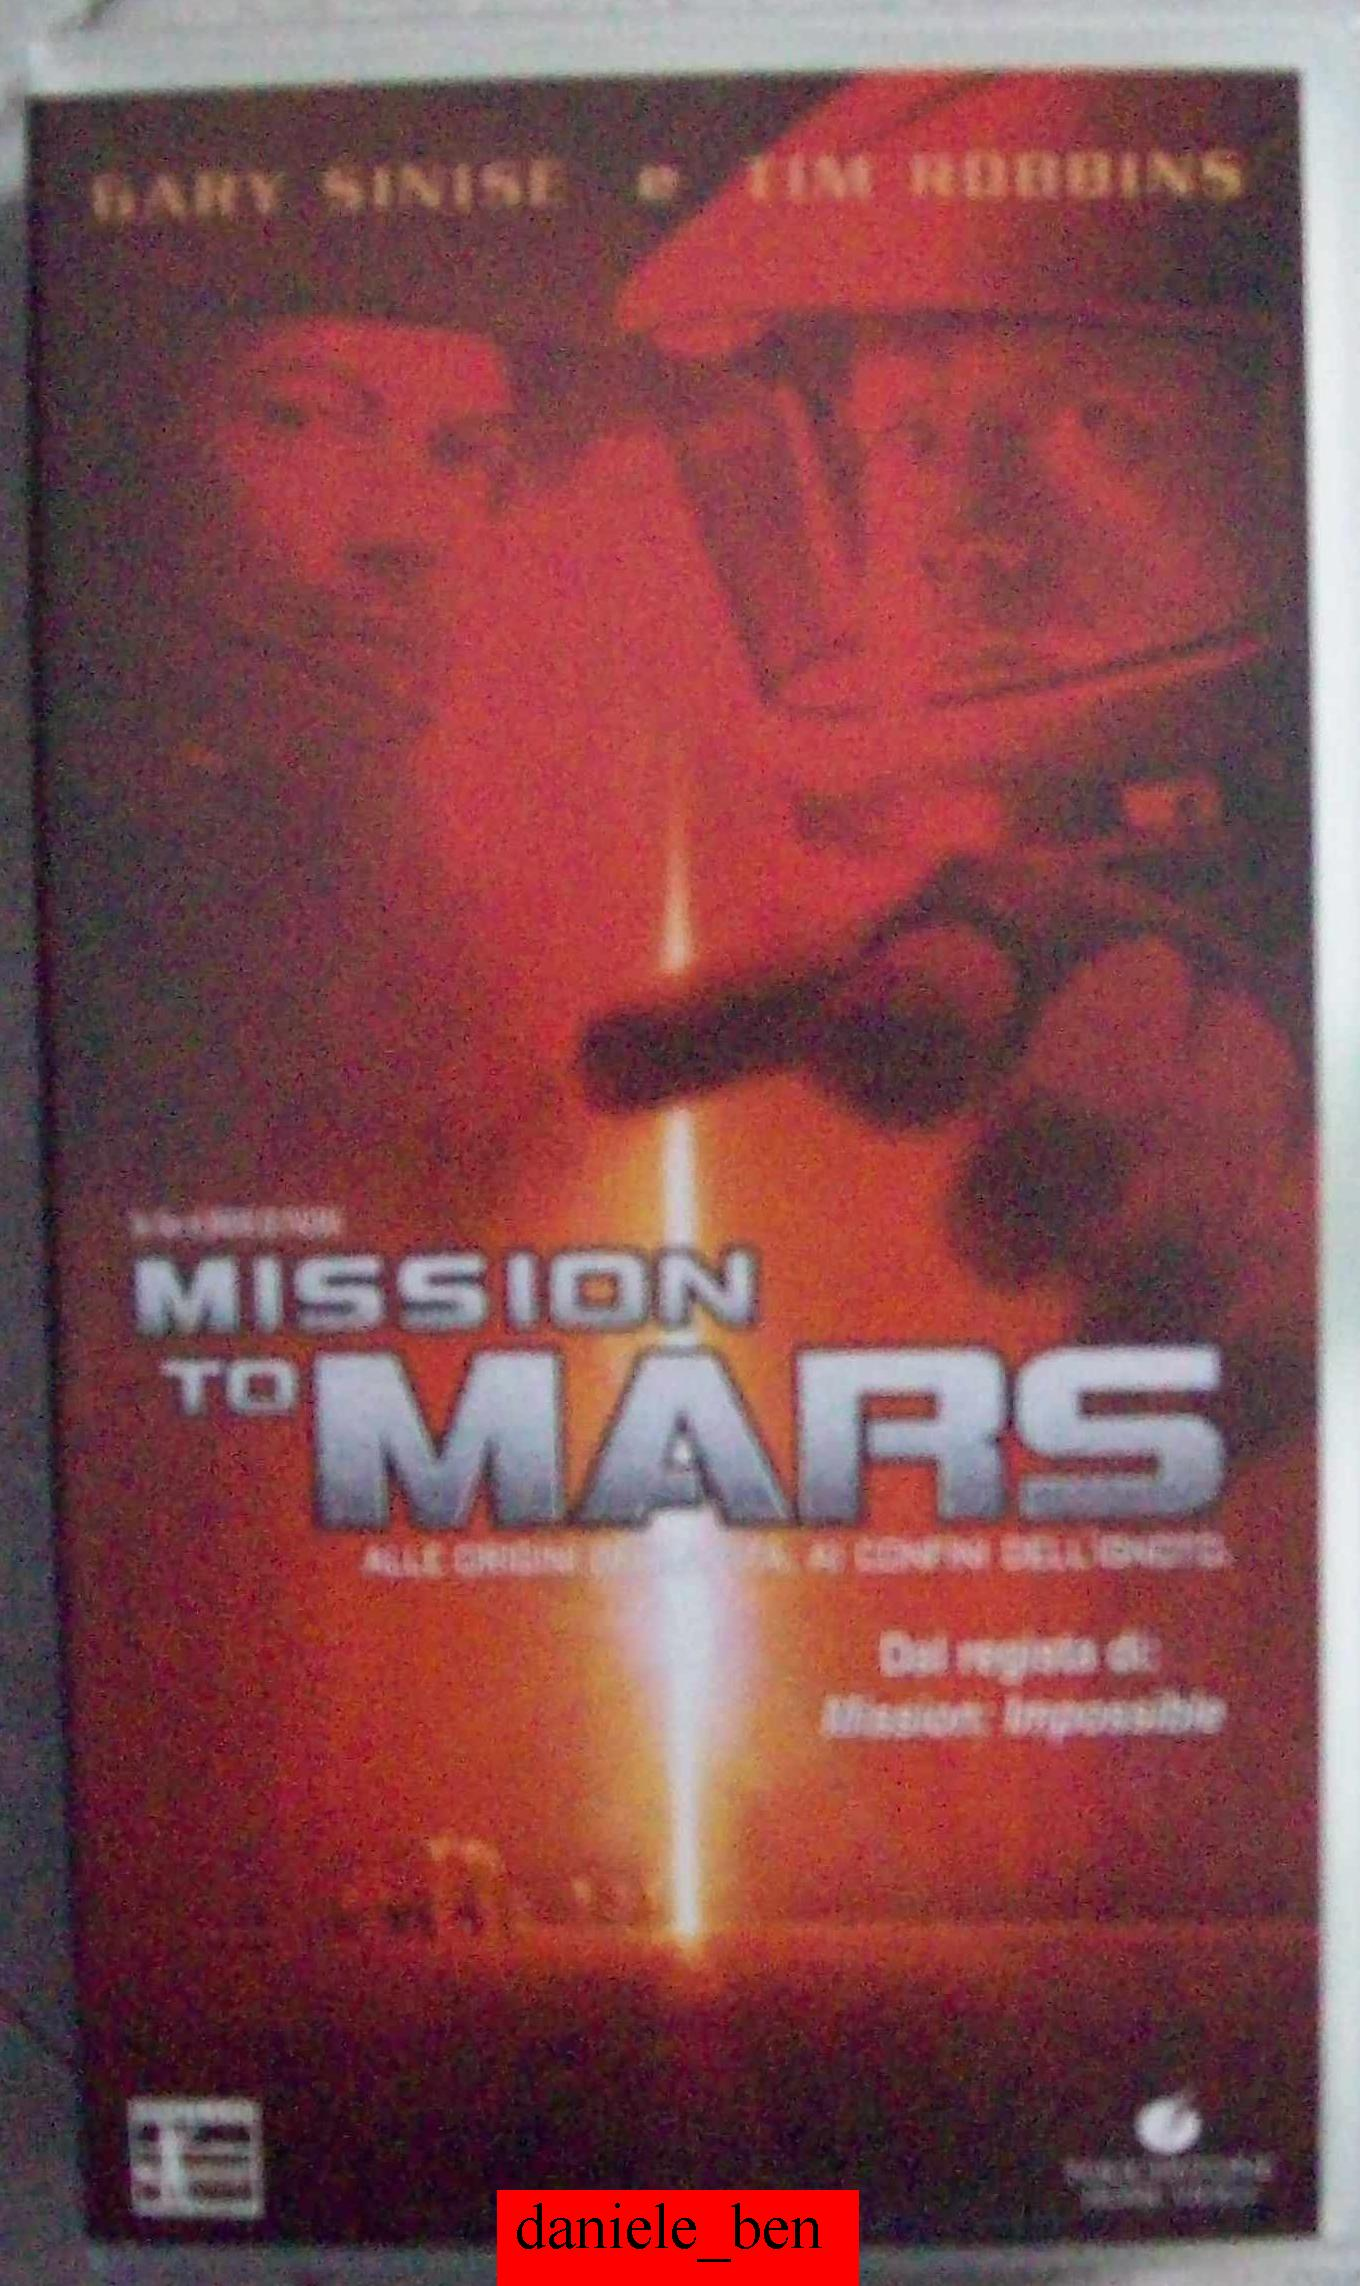 Mission to Mars 2000 Cast - Pics about space